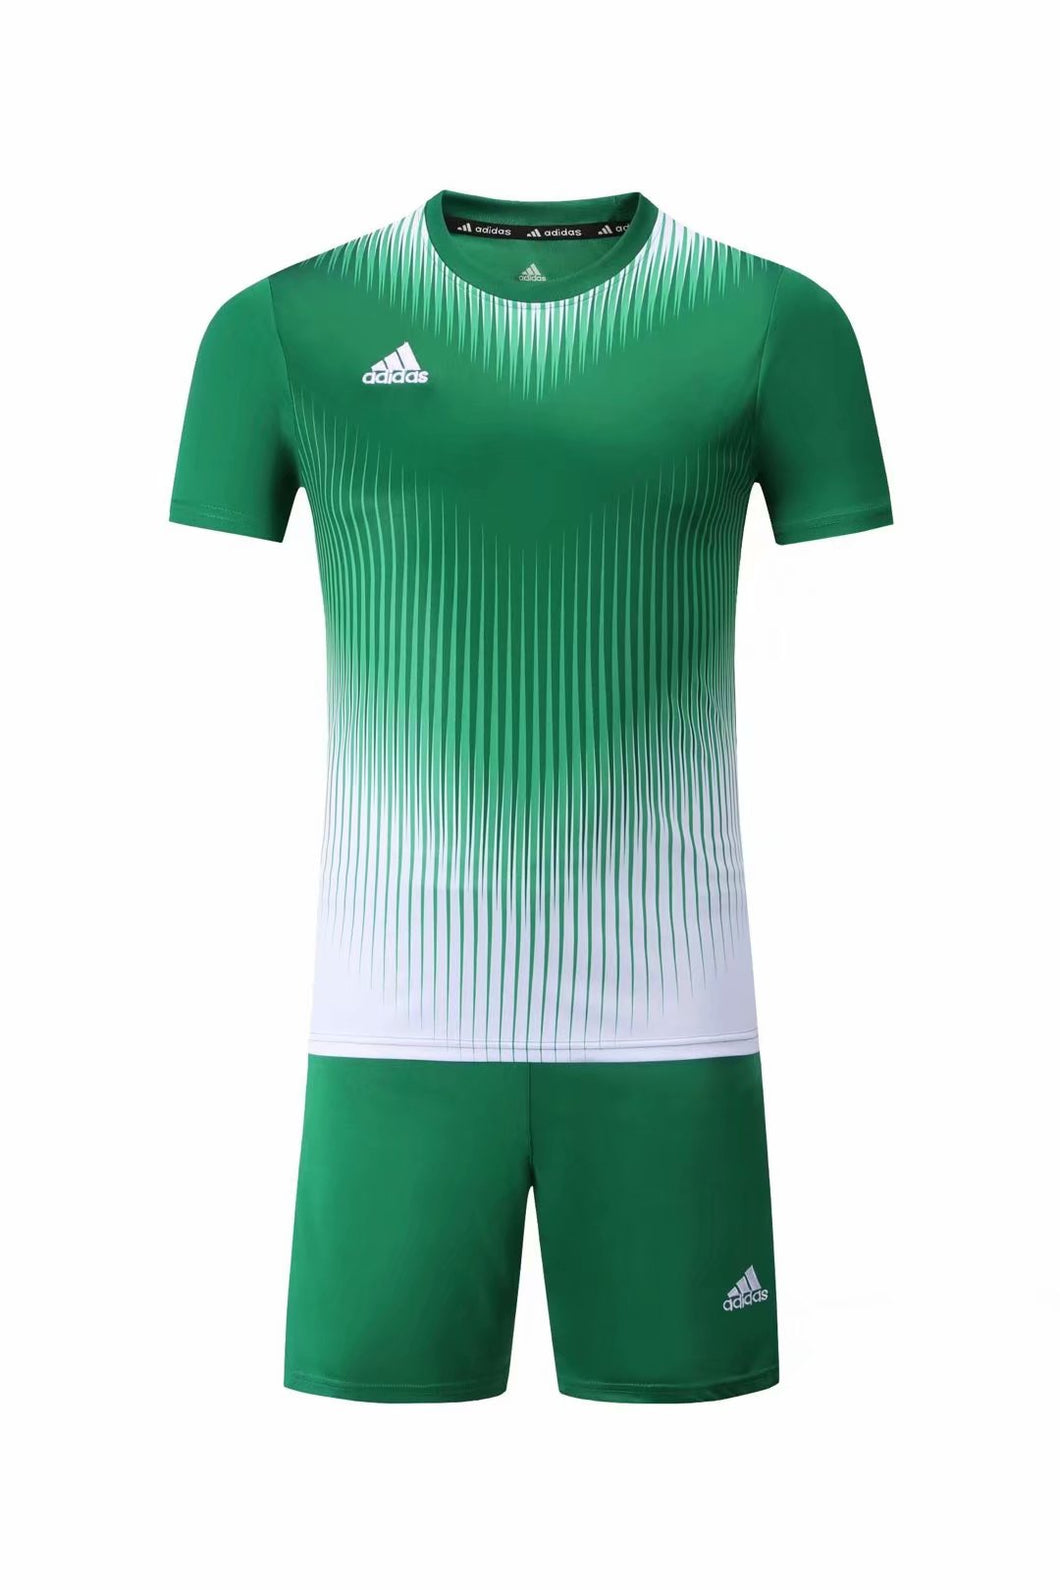 Adidas Full Football Kit Adult Sizes only - 2 tone Green and white